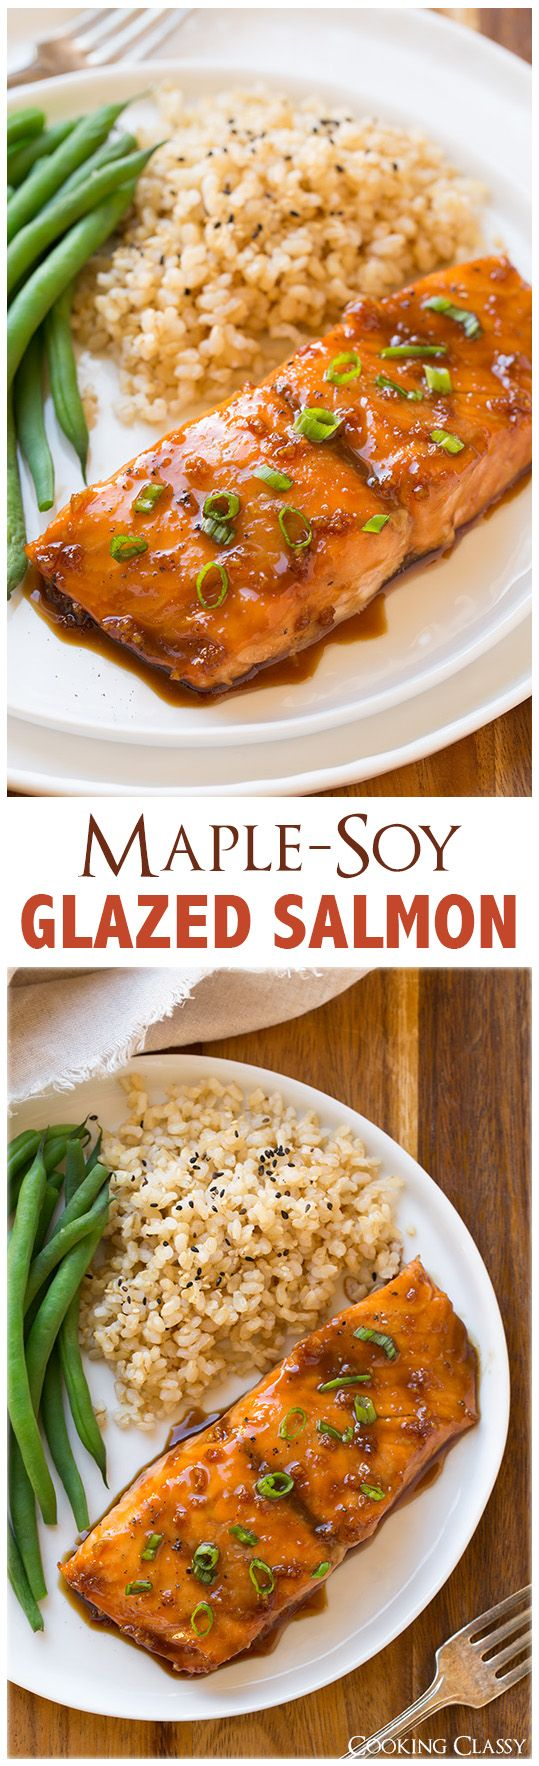 Maple-Soy Glazed Salmon – only FOUR ingredients and it tastes seriously DELICIOUS!!